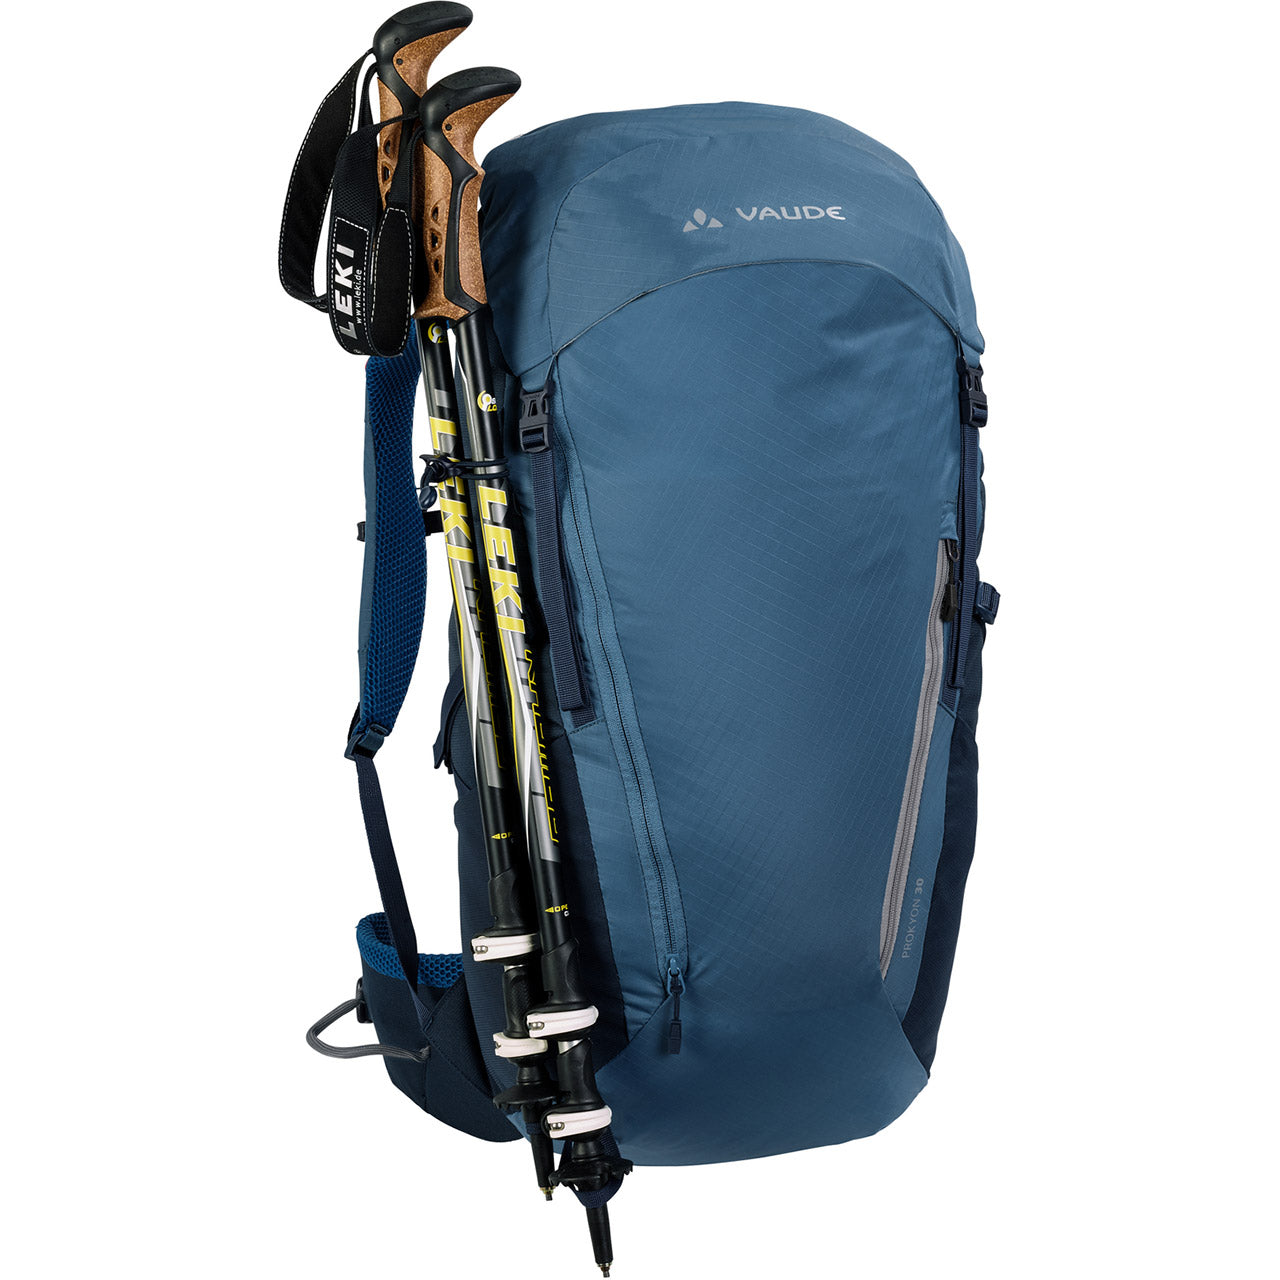 Vaude Prokyon 30-Liter Men's Mountaineering Backpack Trekking Pole Attachment